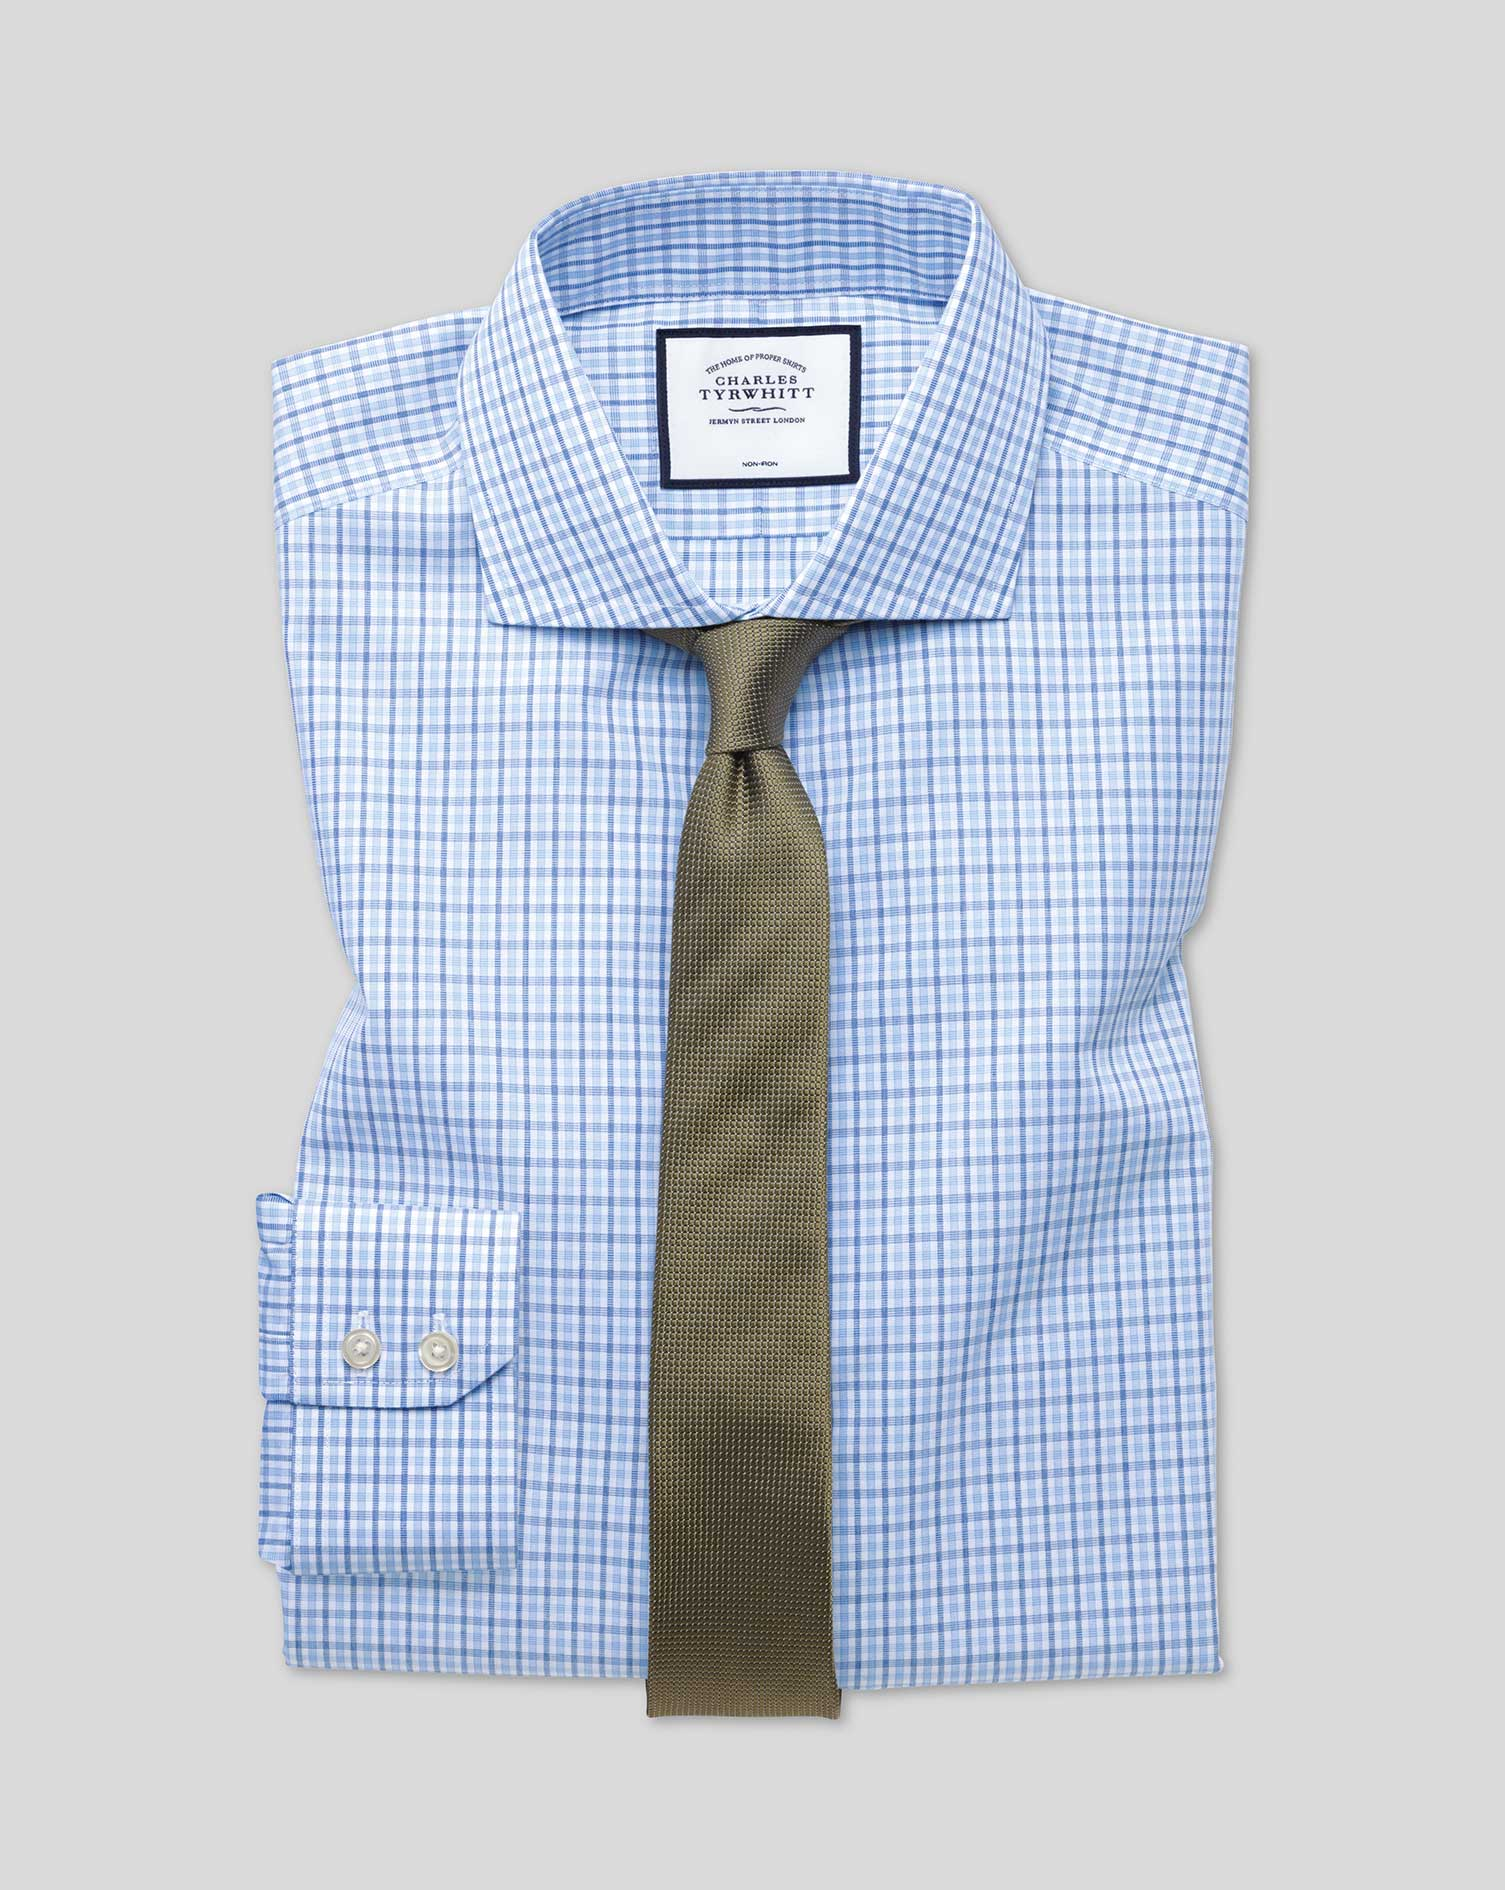 Extra Slim Fit Non-Iron Blue and Sky Blue Check Cotton Formal Shirt Double Cuff Size 17/35 by Charle